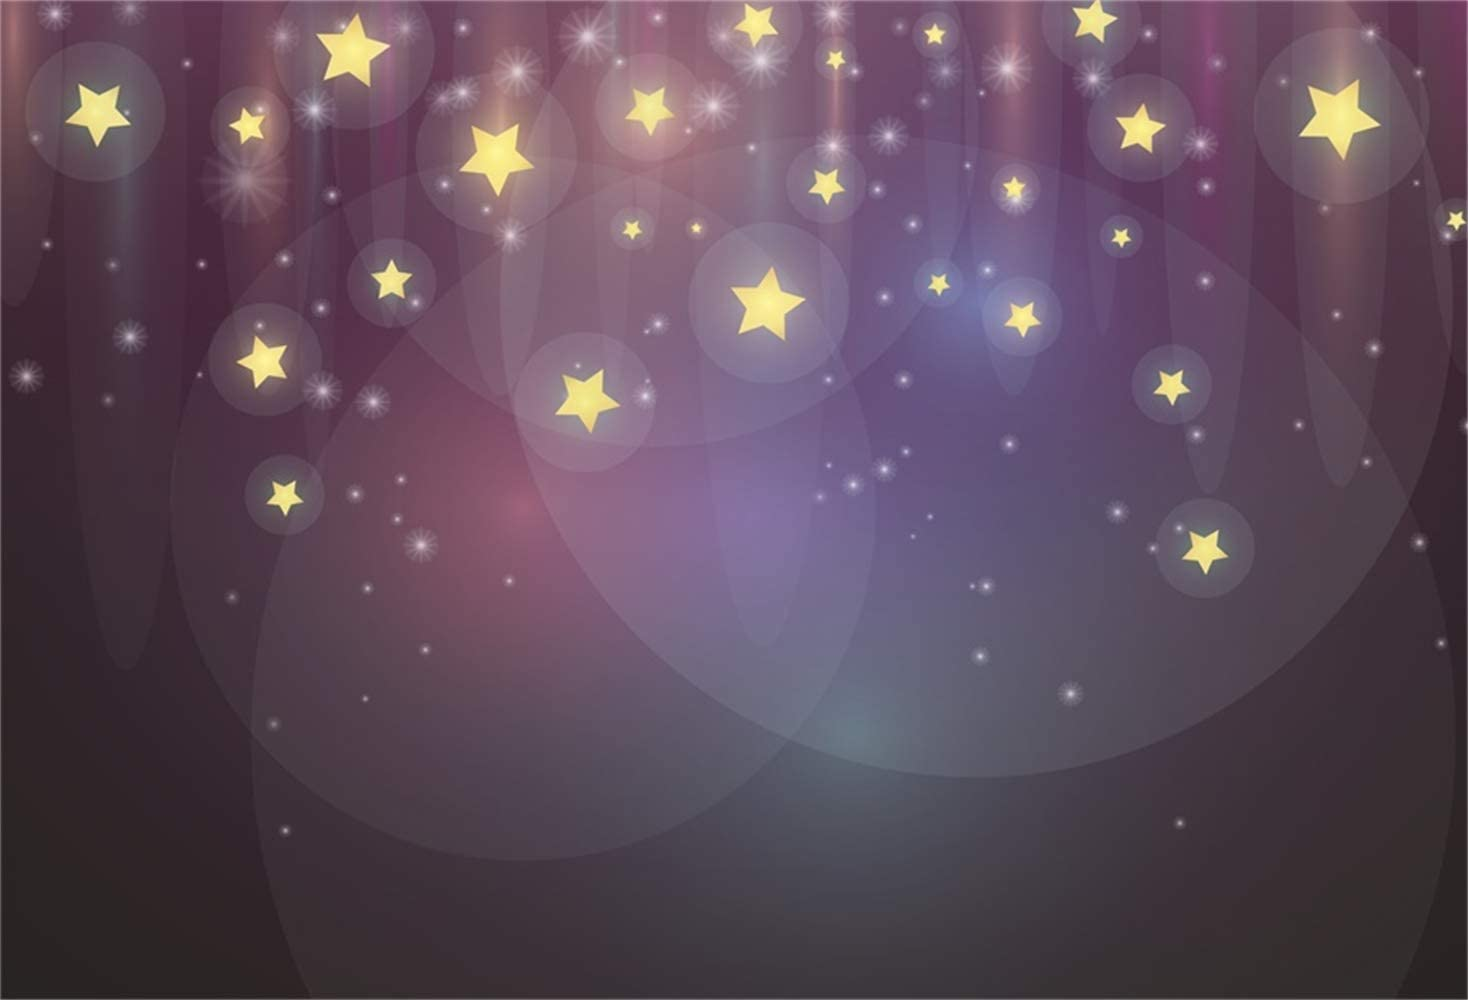 10x6.5ft Dreamy Starry Nightsky Bokeh Haloes Polyester Photography Background Child Kids Baby Portrait Shoot Backdrop Birthdat Party Banner Sweet Dream Wallpaper Studio Props